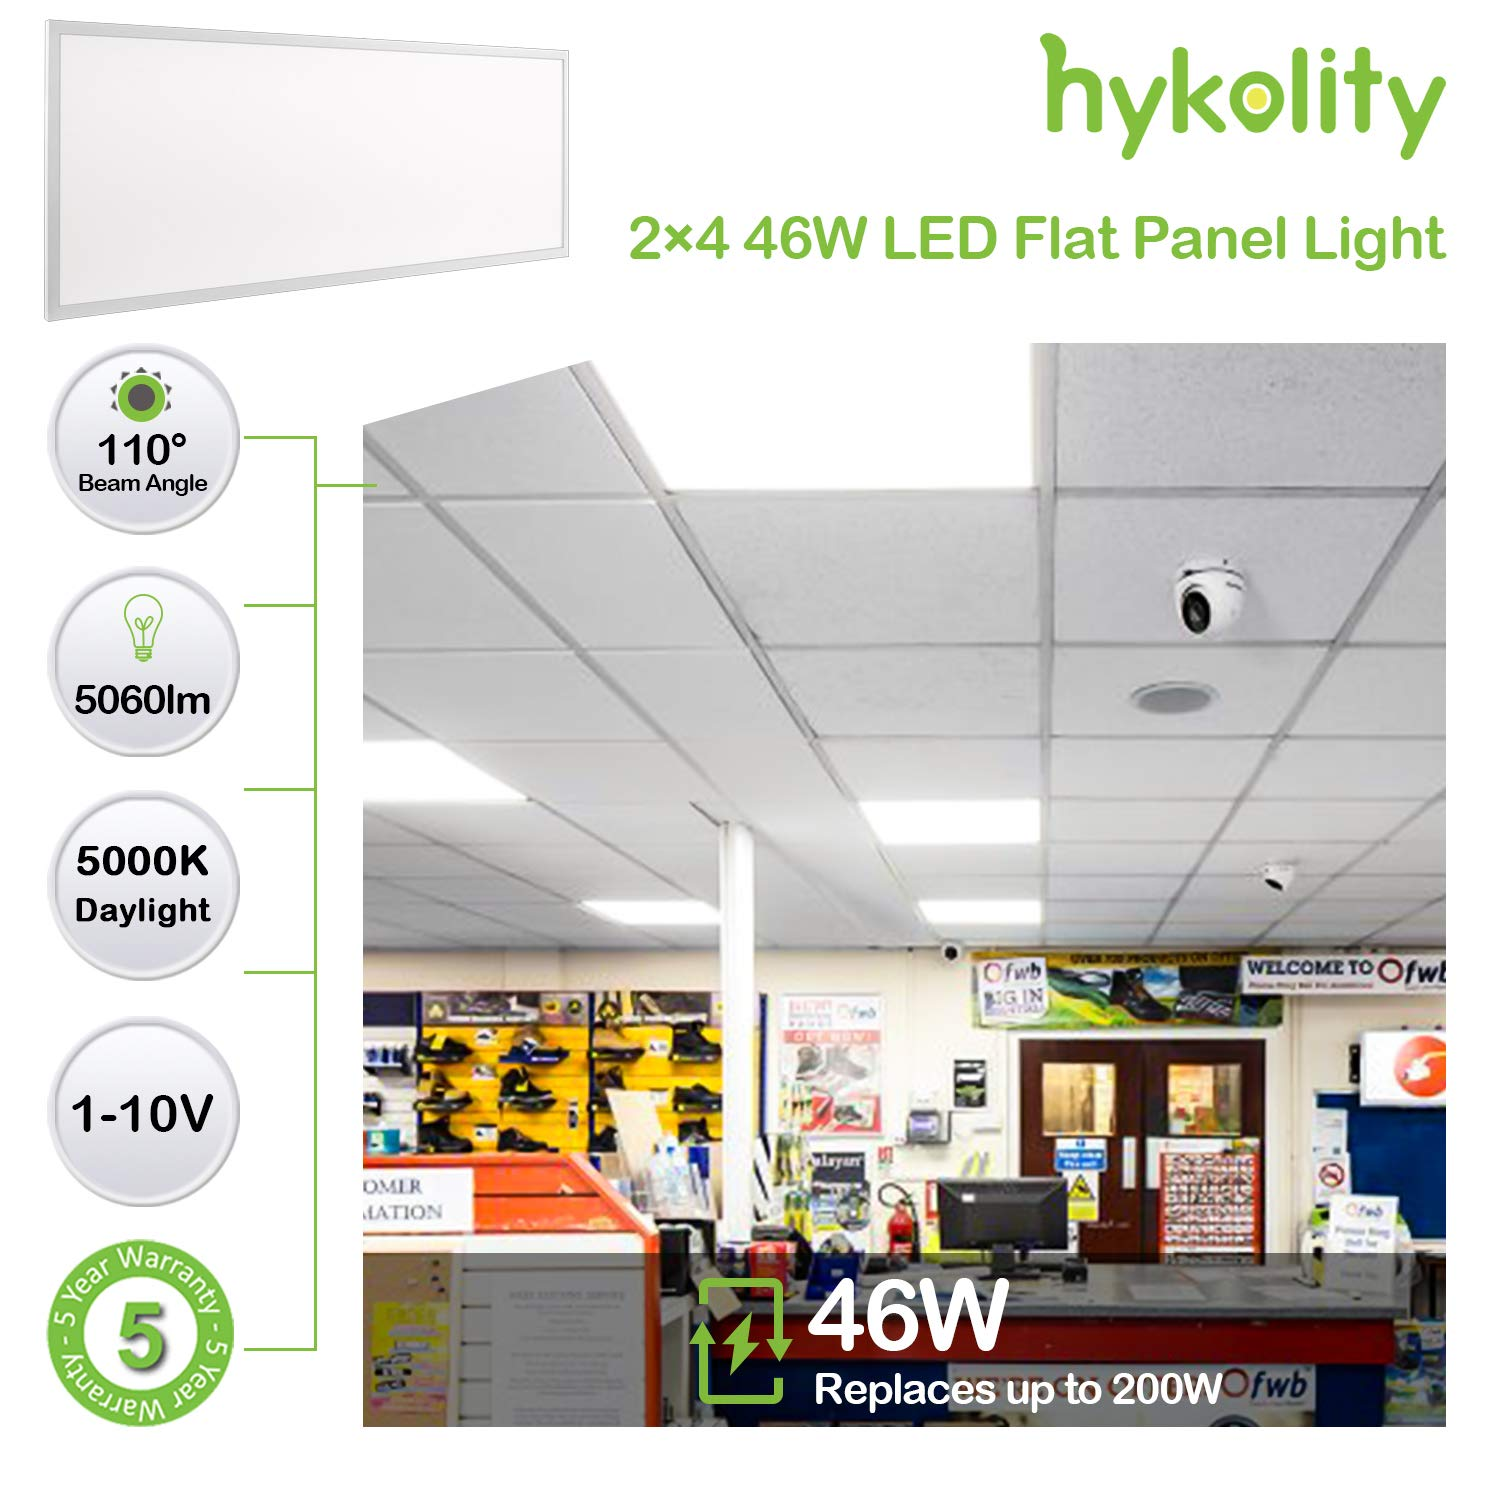 Hykolity 6 Pack 2x2 FT 40W 5000lm Lay-in LED Troffer Panel Light, 1-10V Dimmable Recessed Edge-Lit Troffer Fixture, Drop Ceiling Flat Panel Light, Repalce 2-Lamp T8 Fluorescent Troffer by hykolity (Image #3)